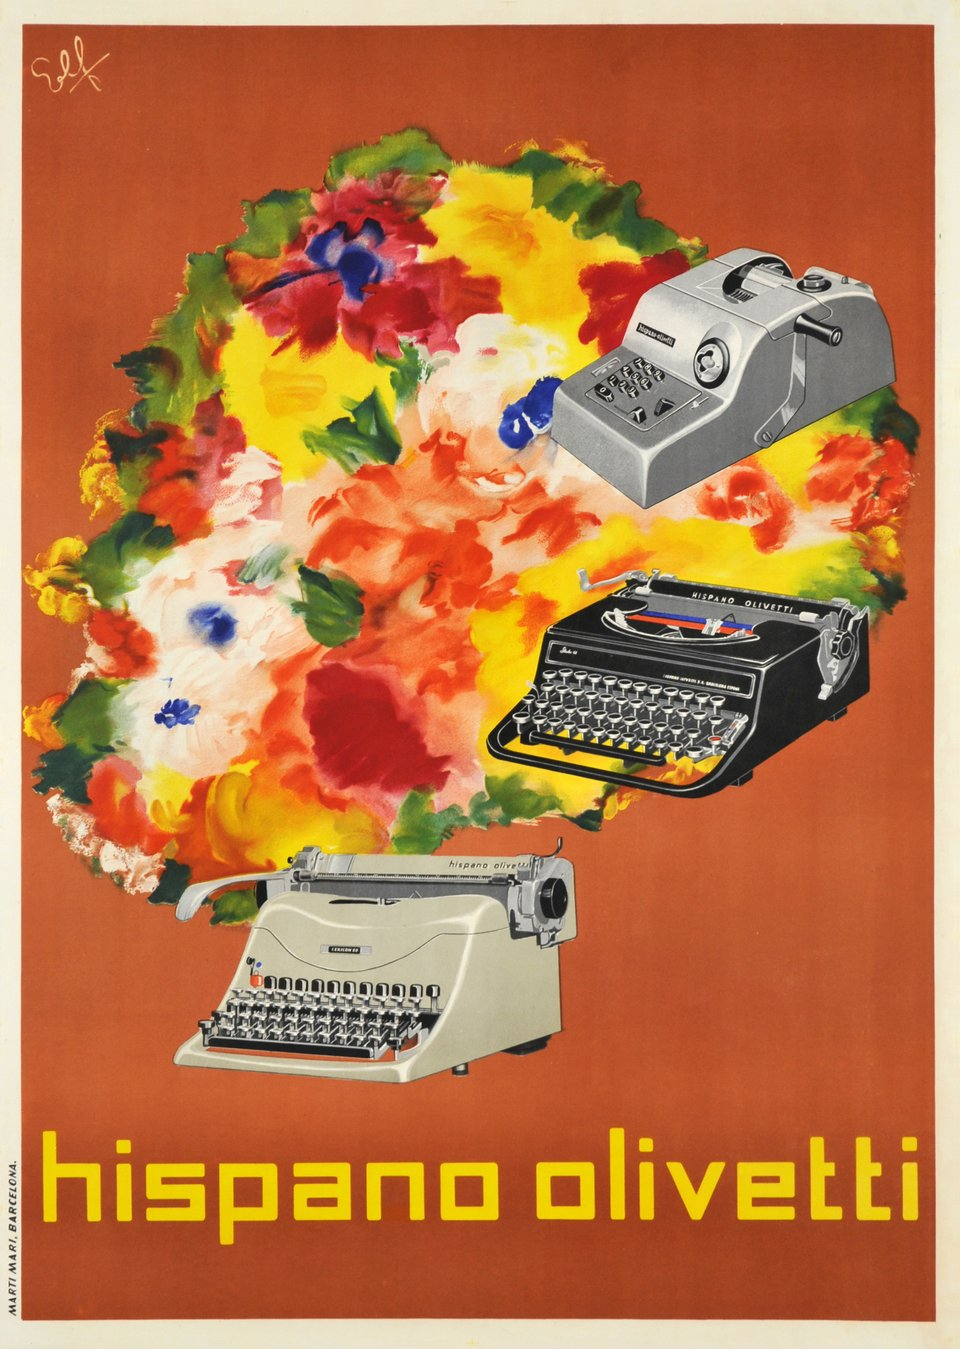 Hispano Olivetti – Affiche ancienne – ELF – 1950